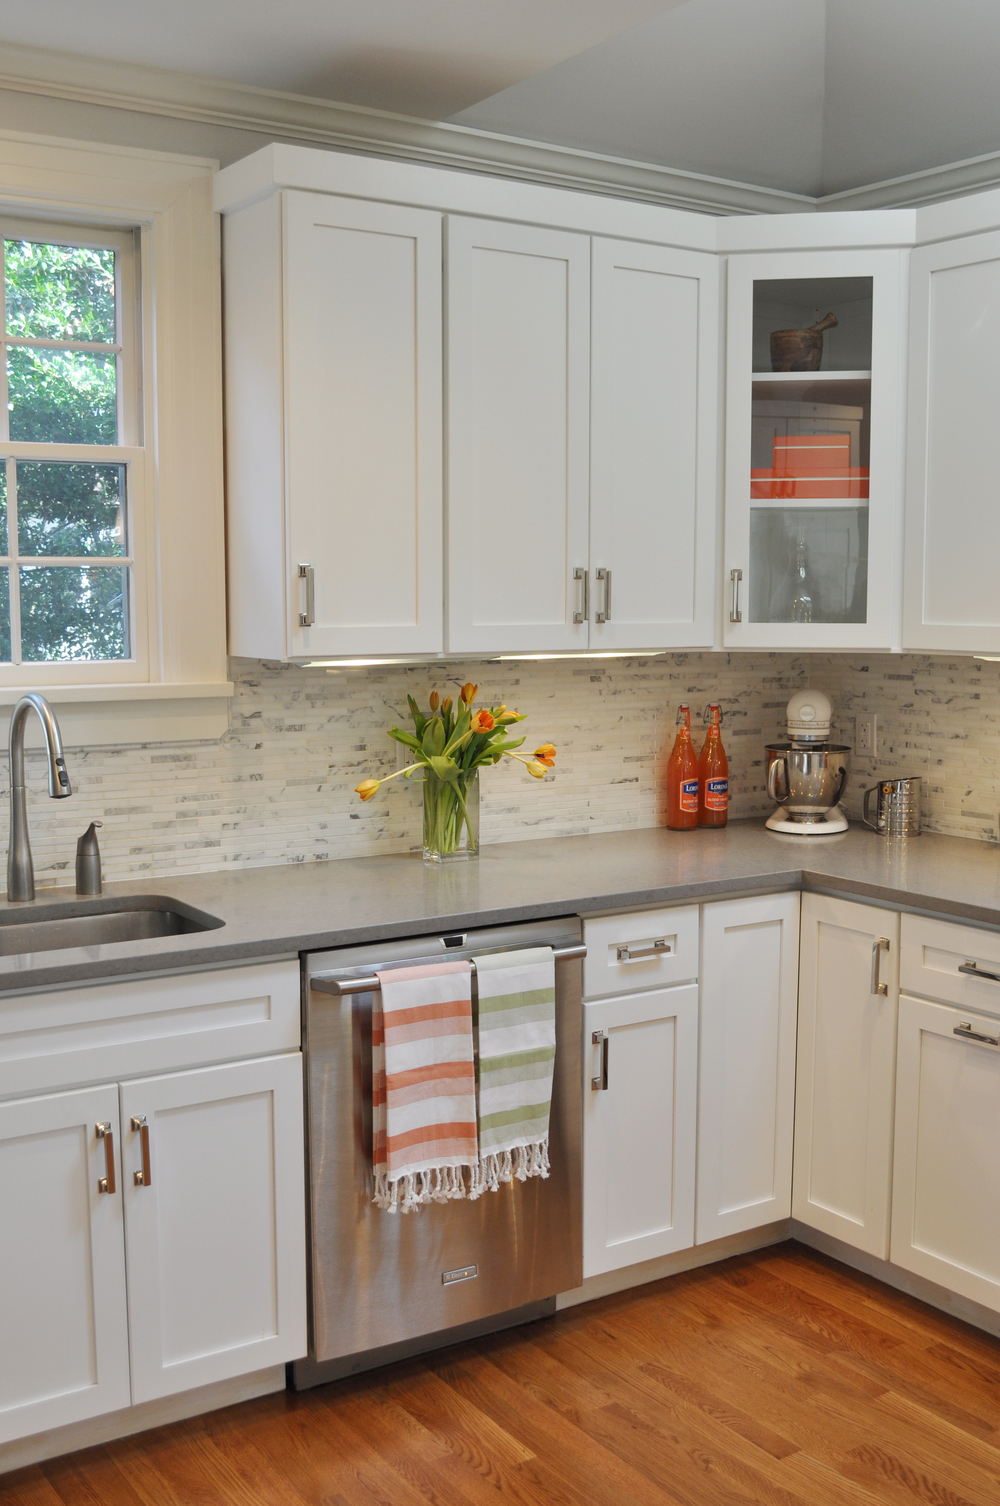 "CLASSIC WHITE KITCHEN, Larchmont, NY:  The existing kitchen space was crowded, functionally-impaired and uninspired.  The new kitchen is styled with white Shaker-style cabinets, Caesarstone ""cement-colored"" countertops for a bit of urban style and timeless Carrara marble backsplash tiles in a modern horizontal orientation for a fresh look fitting for the young family. The new peninsula is highly functional as it serves as the breakfast and homework area. The renovated space allows for extra natural light through new skylights and French doors to the outdoor patio, while hand-blown glass pendants and under-counter lighting provide interest and ambiance."